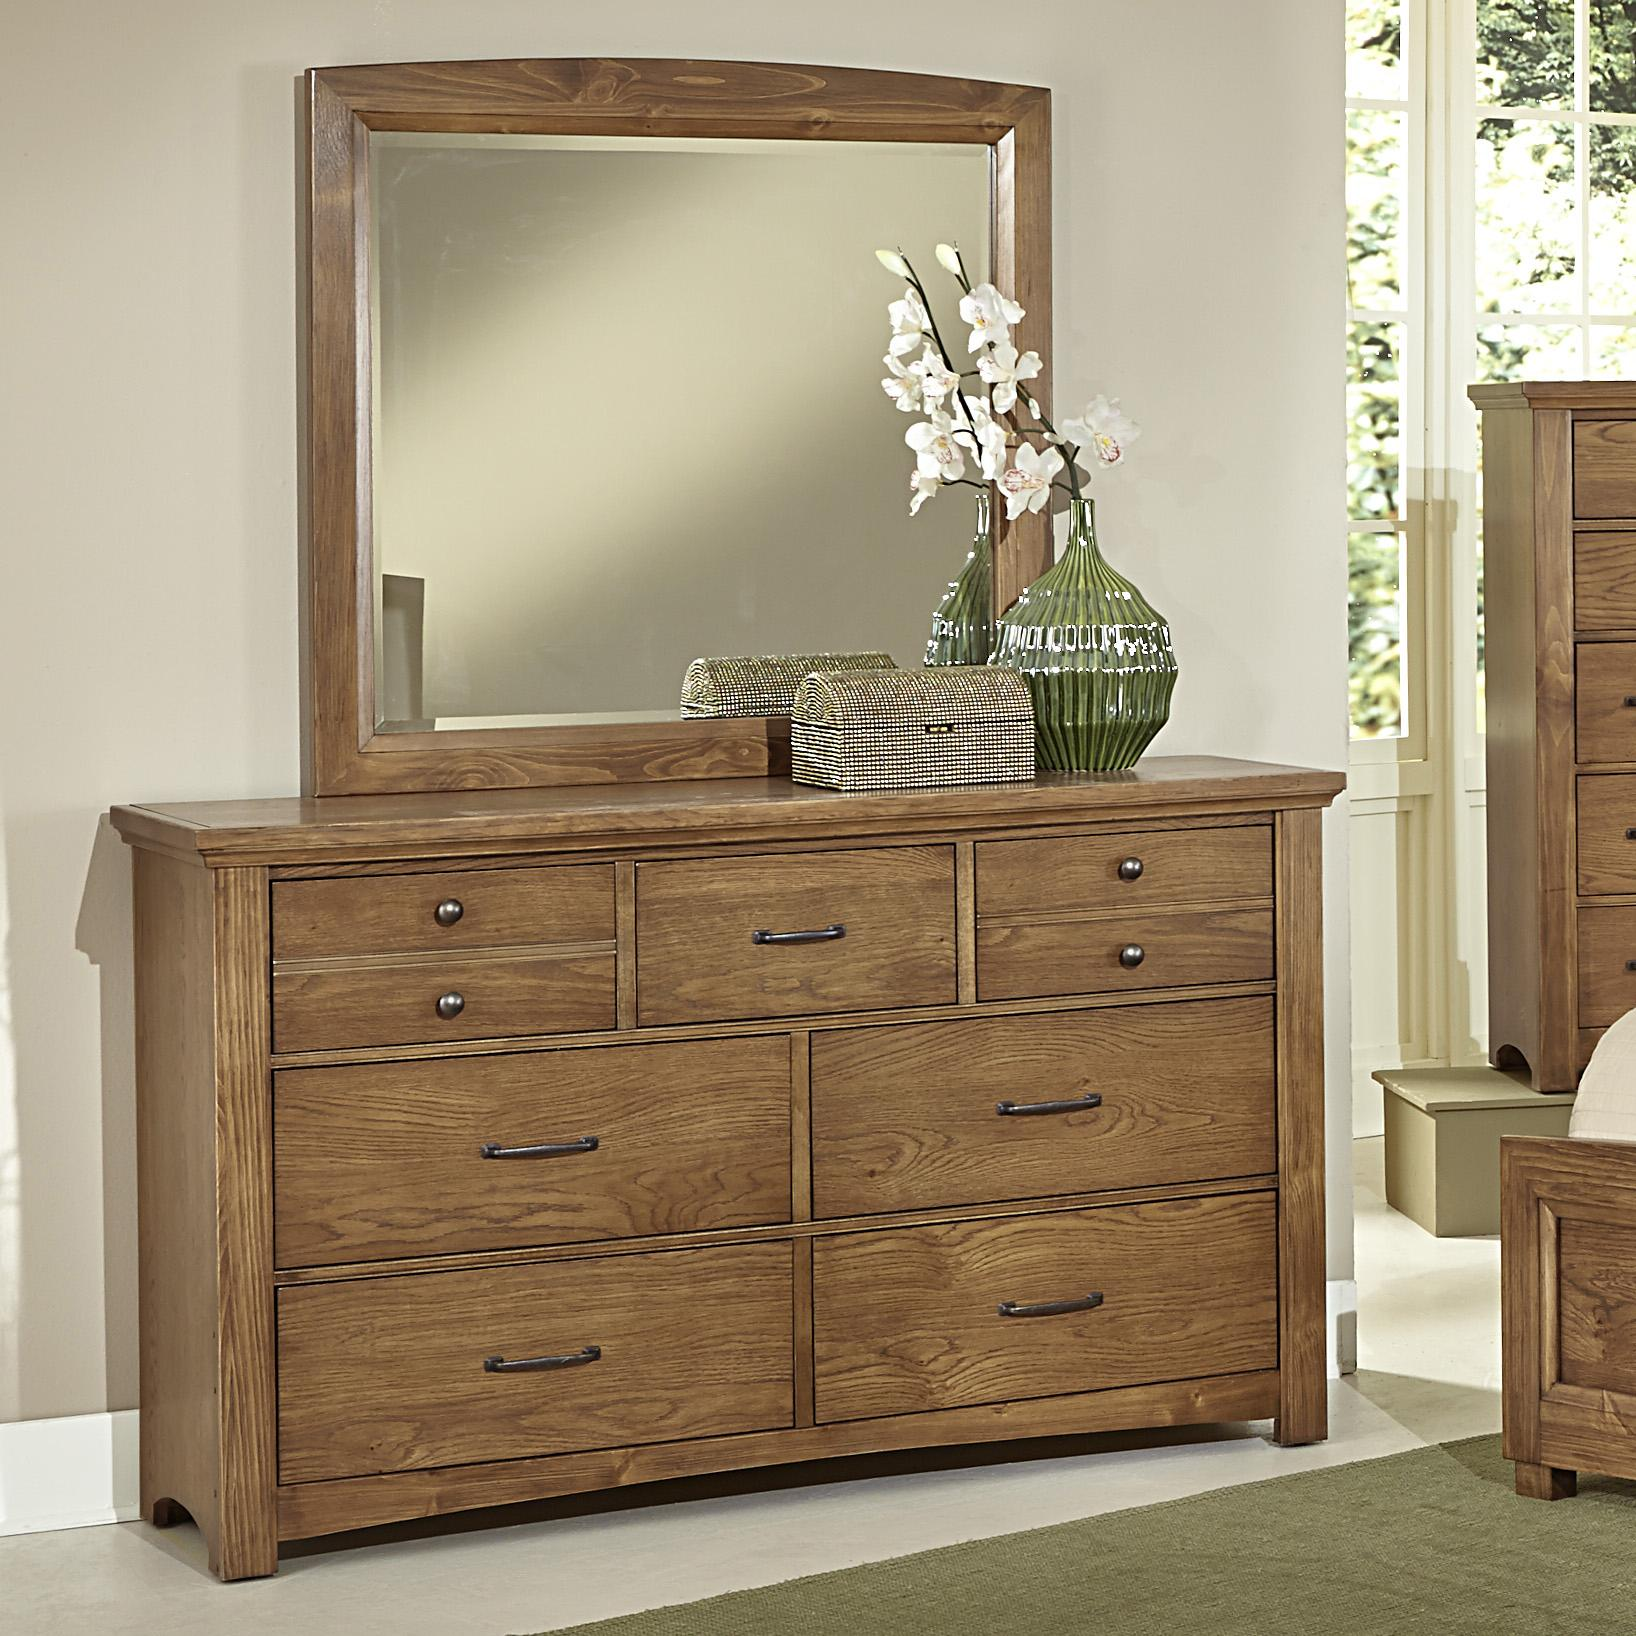 Vaughan Bassett Transitions Dresser & Landscape Mirror - Item Number: BB63-002+446